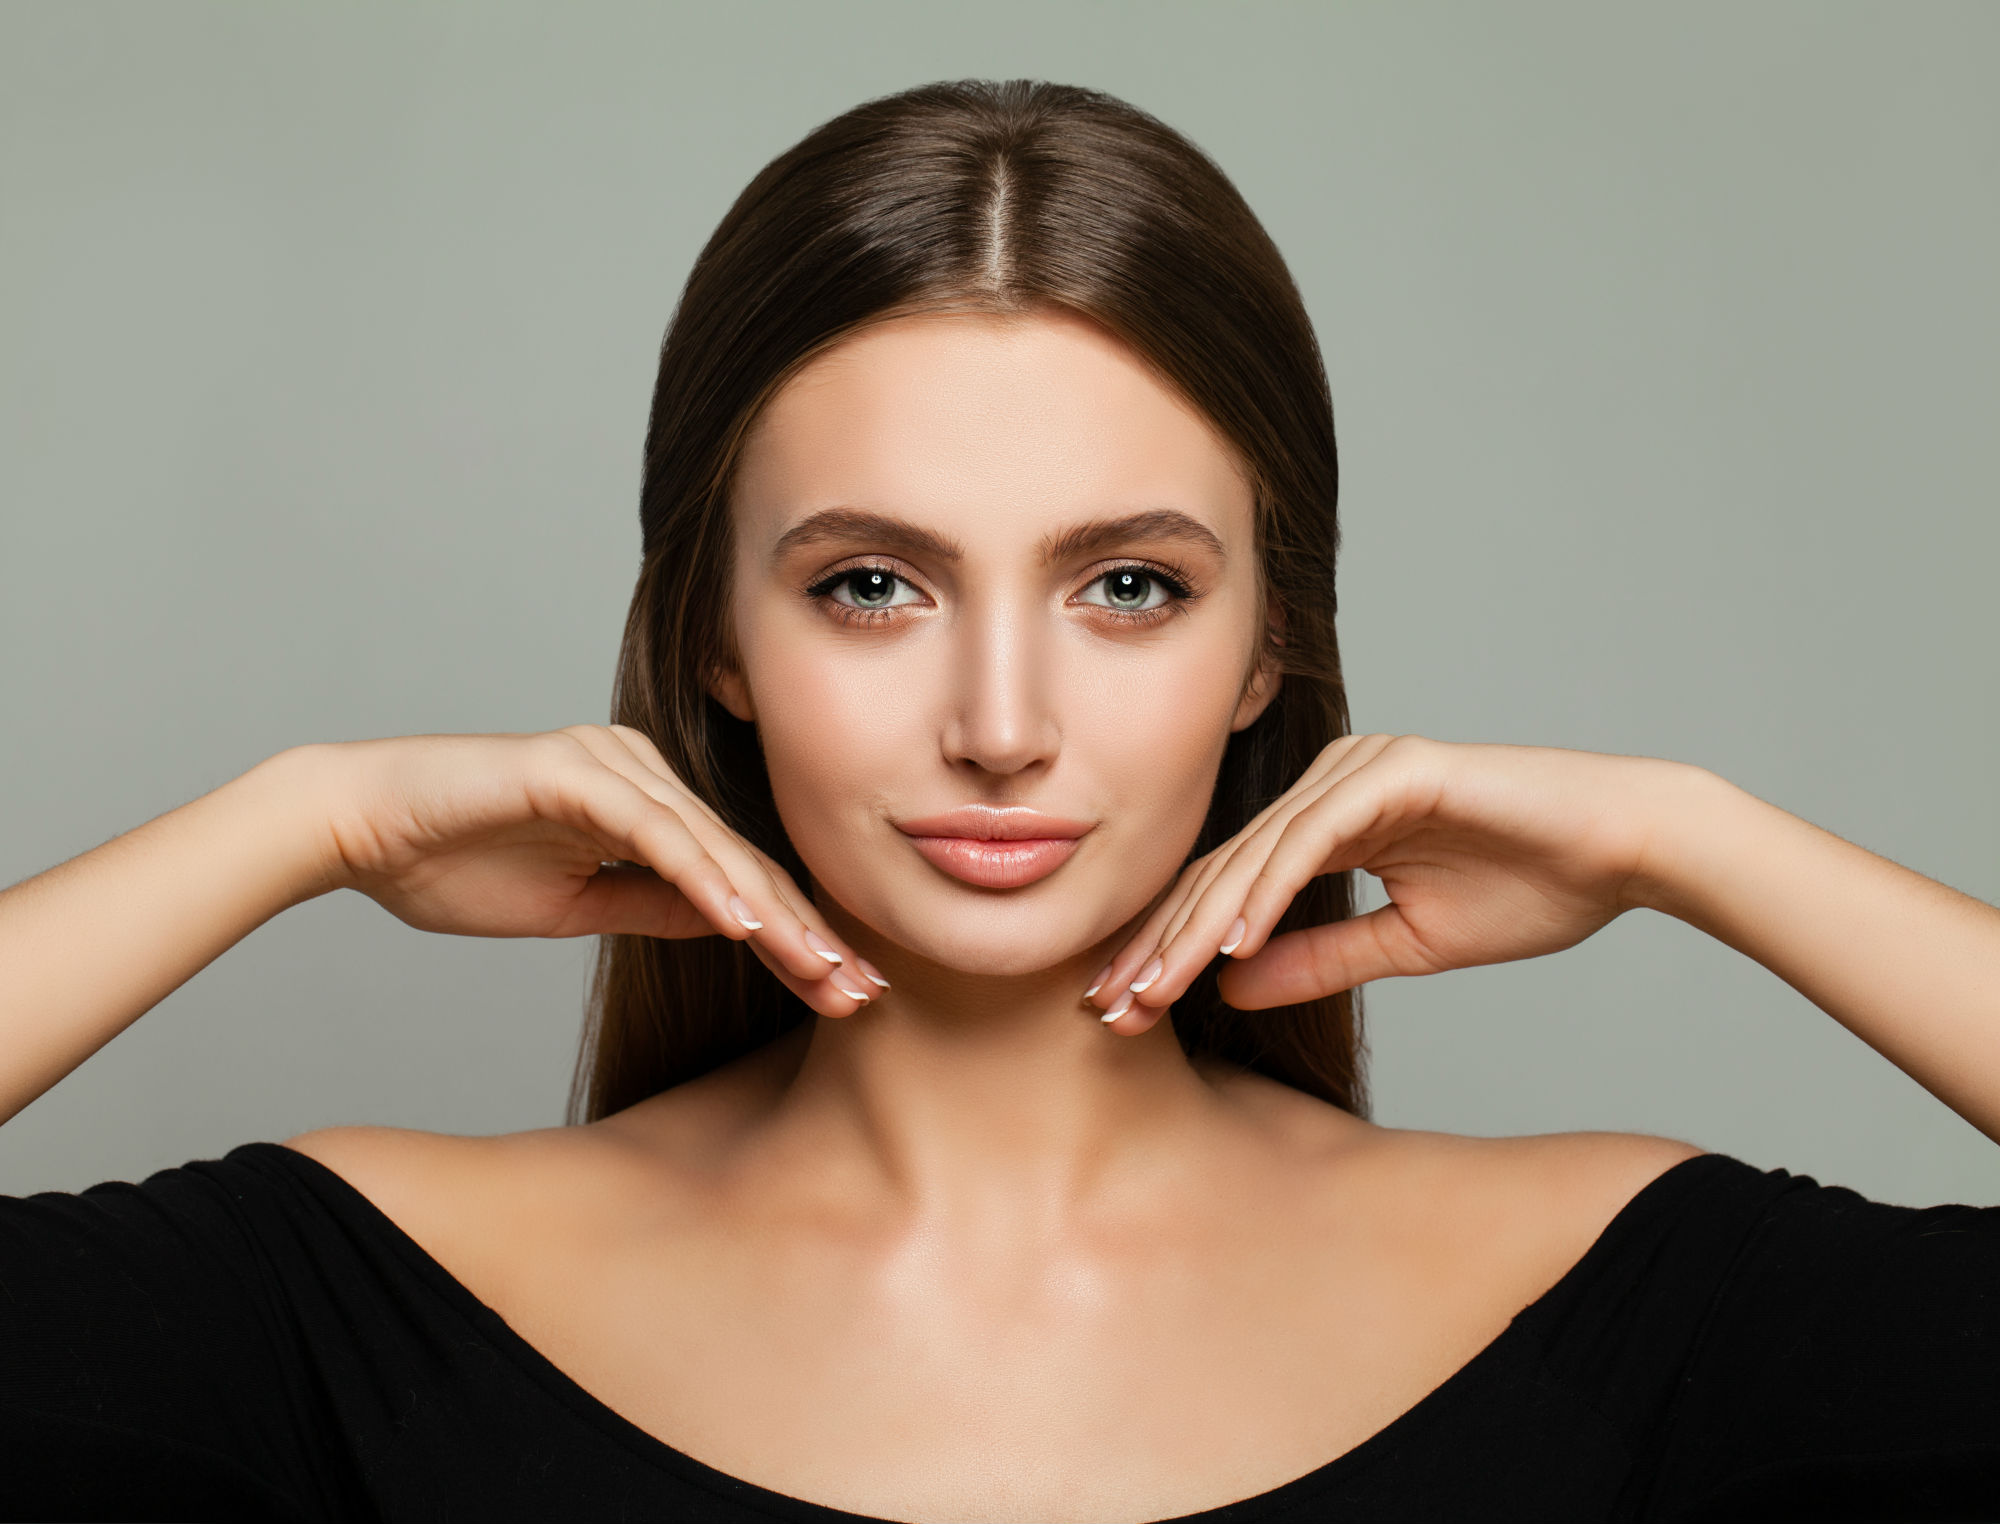 How to Get a V Shape Face without Surgery